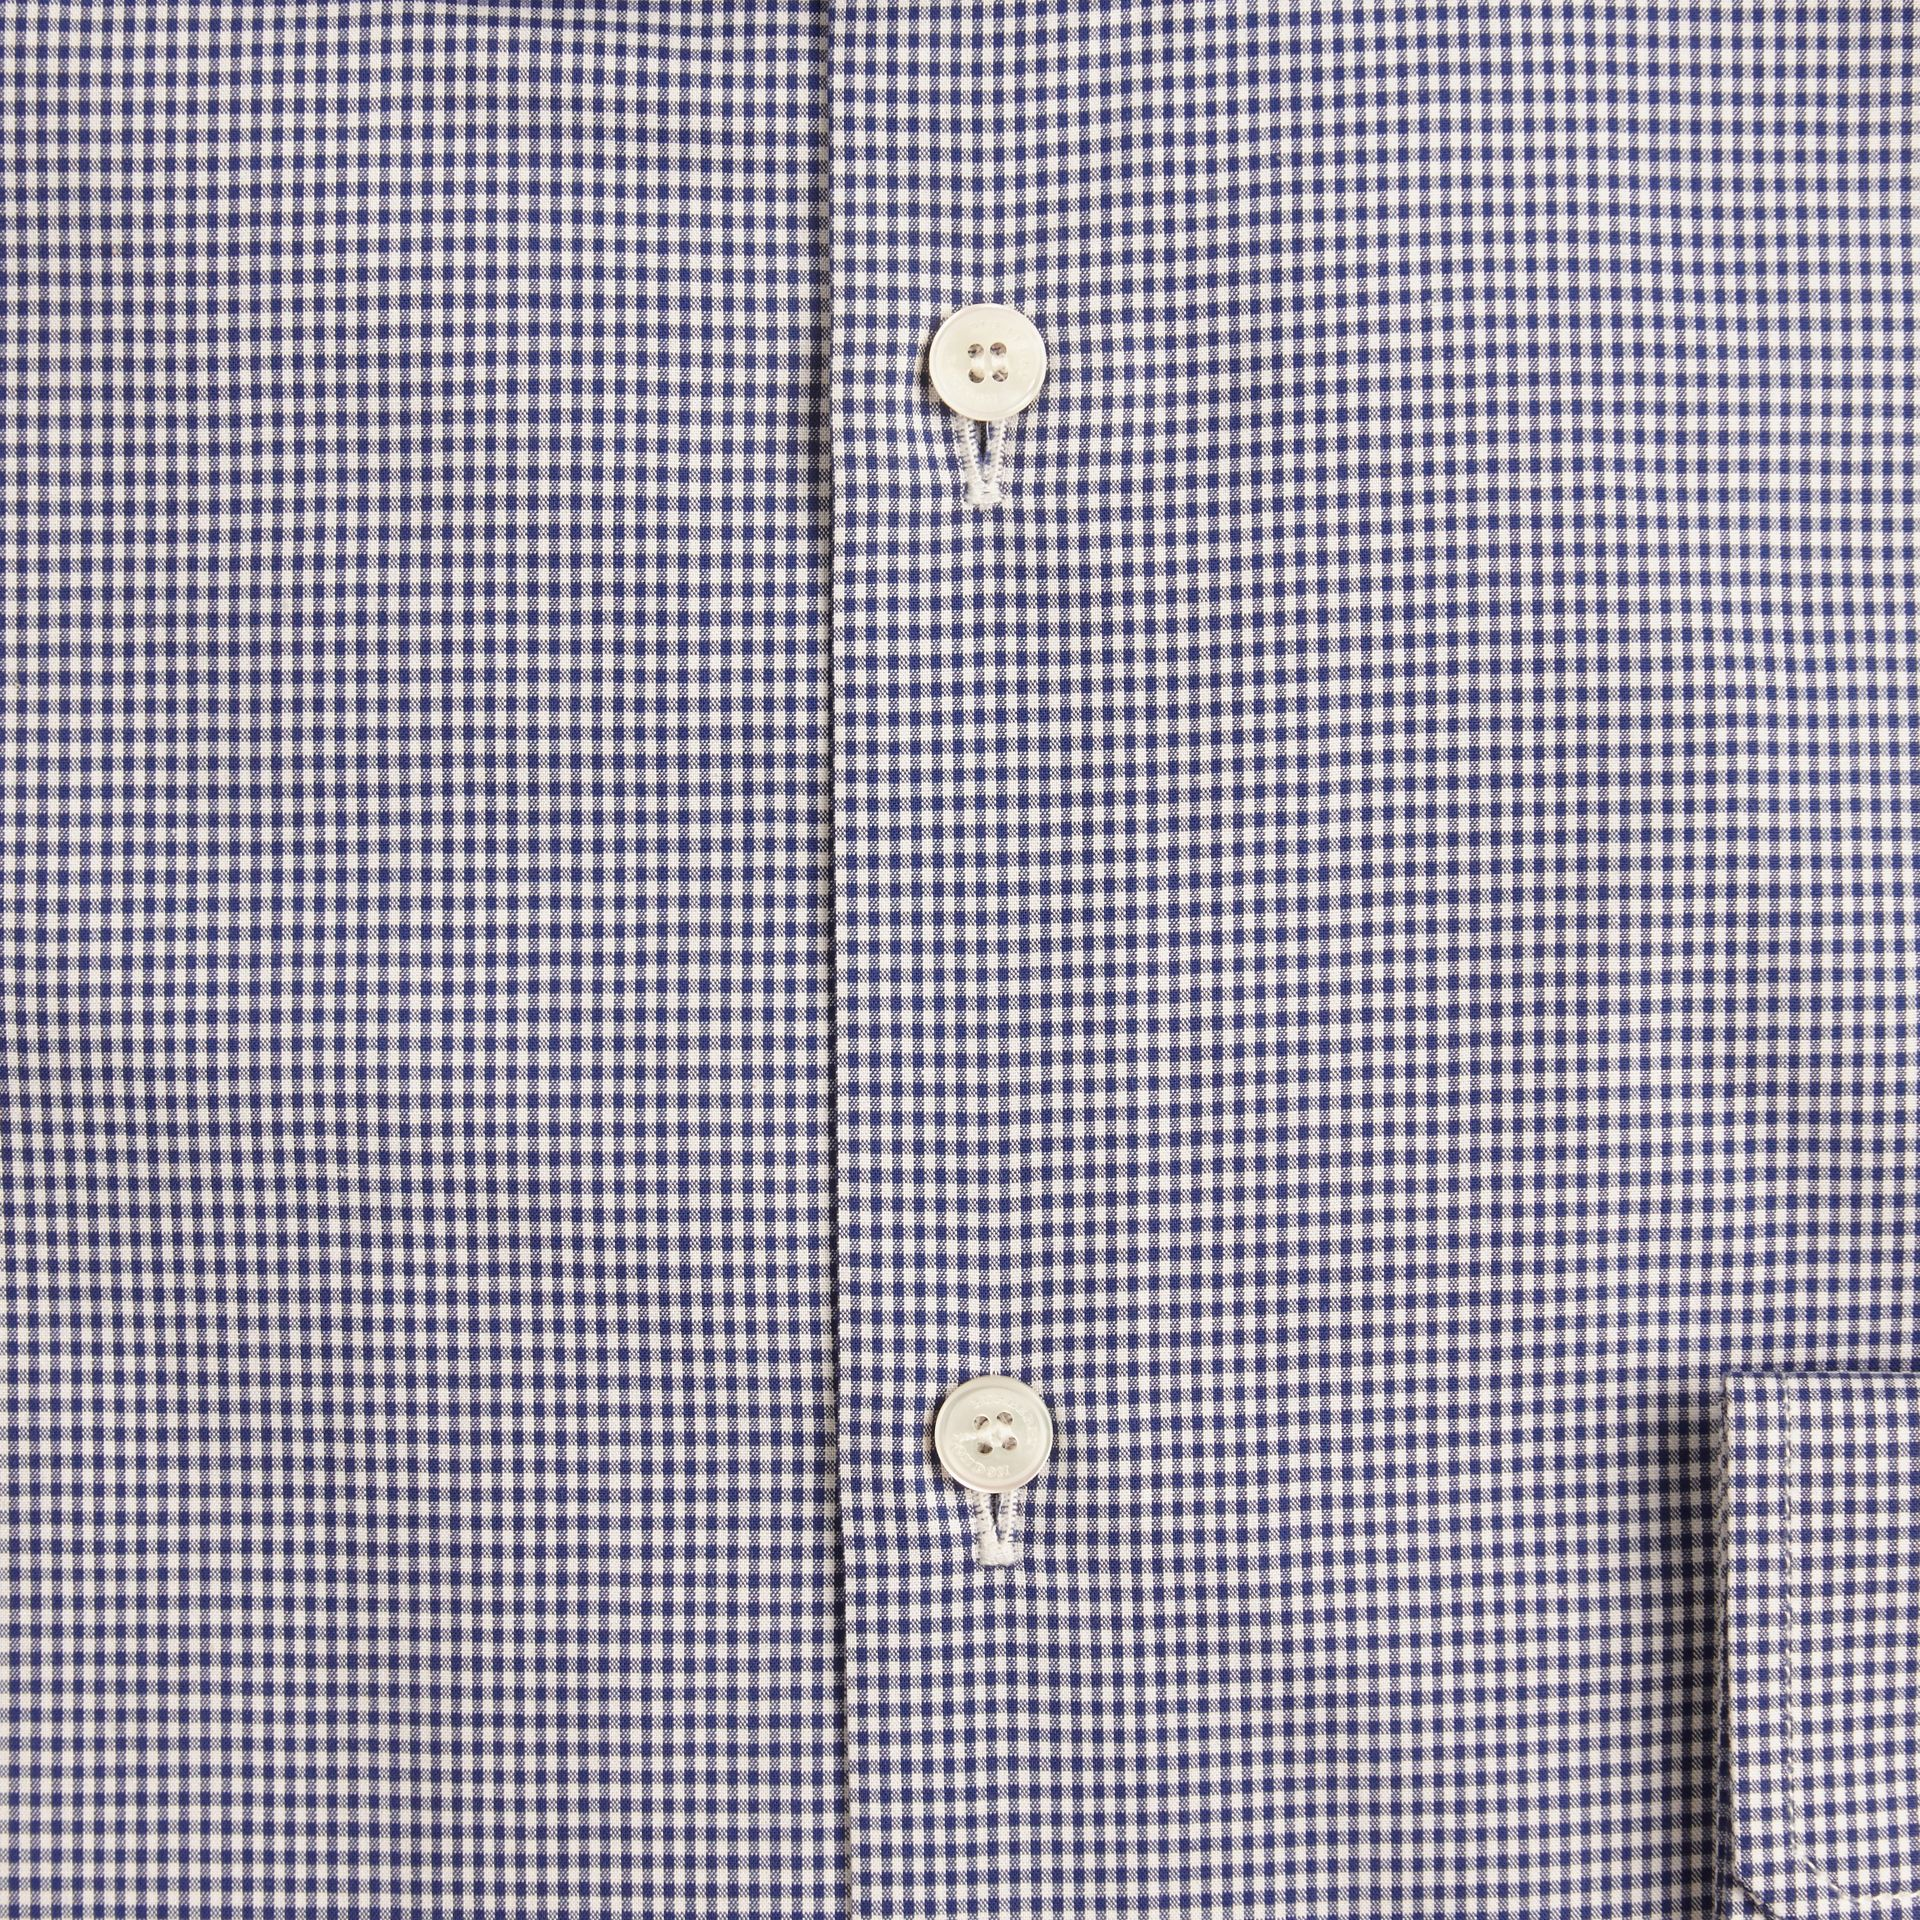 Slim Fit Gingham Cotton Poplin Shirt Dark Empire Blue - gallery image 2